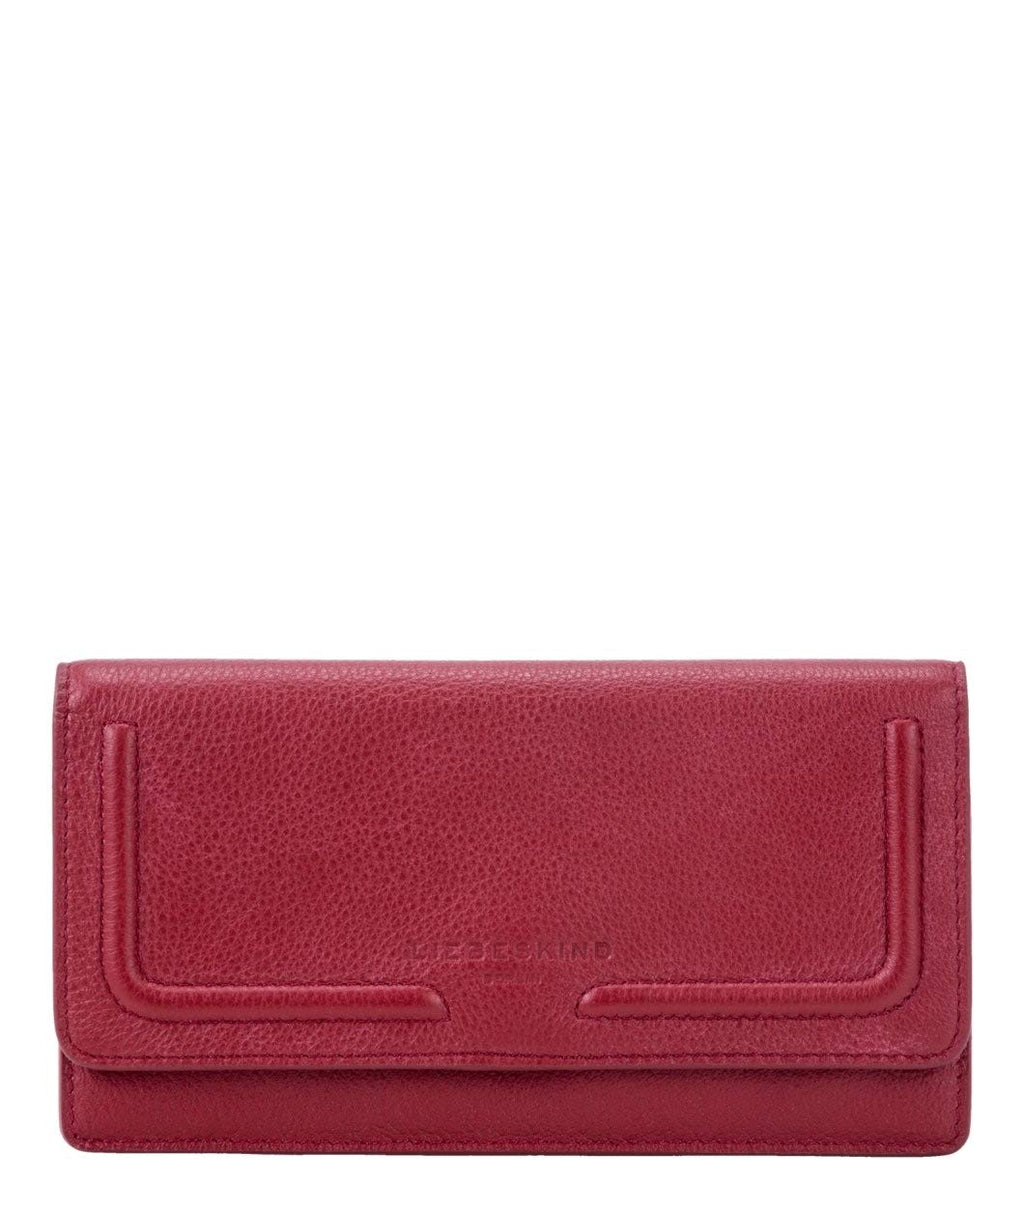 Scarpe Round Love Note - Slam Wallet LargeDonnaPortafogliRosso (Dahlia Red) 2x11x19 centimeters (B x H x T) Marche Famose